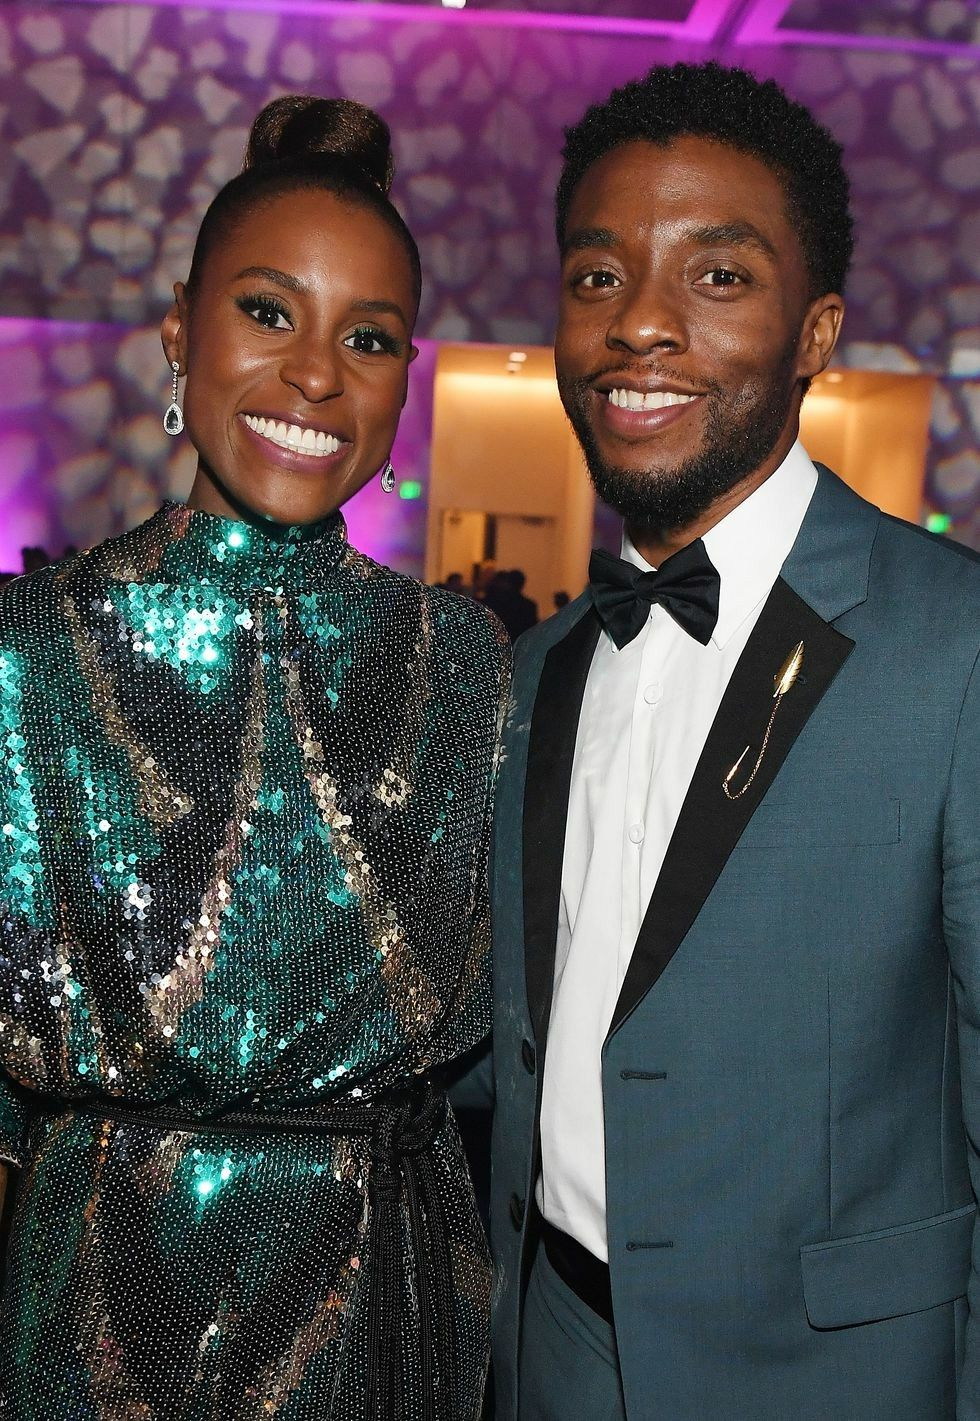 Issa Rae And Chadwick Boseman At The 49th Naacp Image Awards After Party Issarae Actress Naacp Issa Rae Chadwick Boseman Family Chadwick Boseman